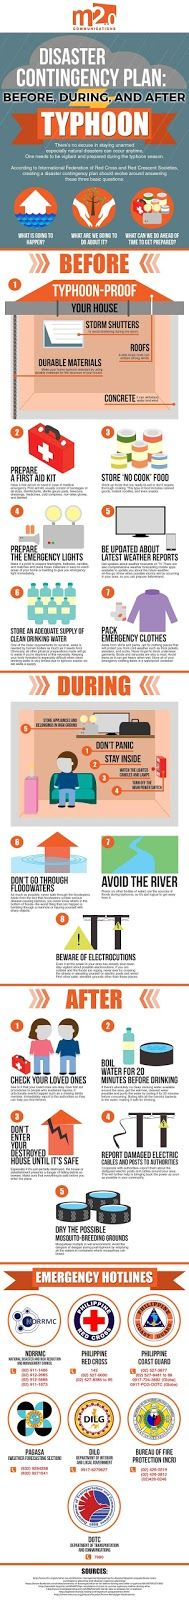 Disaster Contingency Plan: Before, During, and After Typhoon #infographics #typhoon #disasterrecovery #disastercontingencyplan #naturaldisaster #familly #community #organization